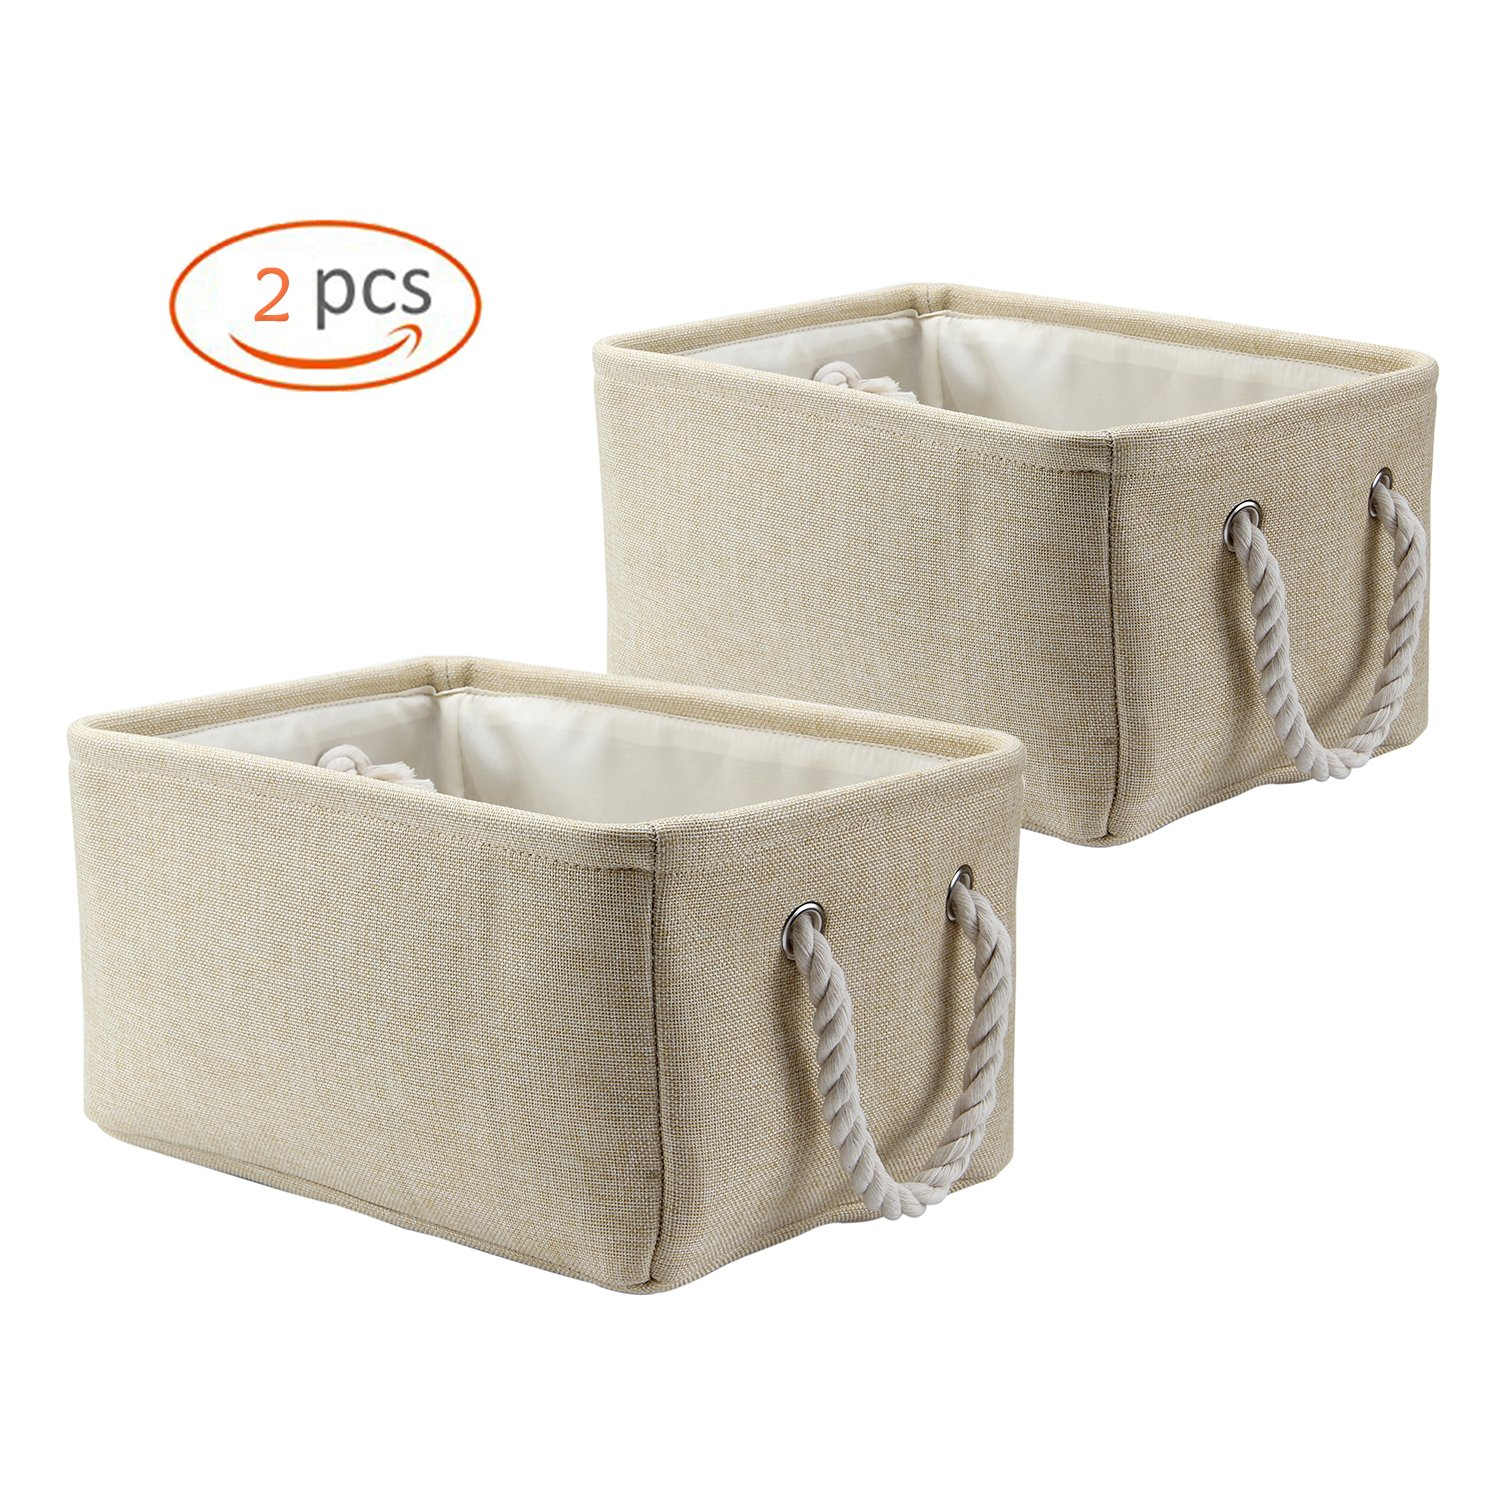 Biubee 2 Pack Diaper Storage Bin-Collapsible Hamper Organizer Baskets with Handle for Organizing toys ,Blankets and Laundry for Newborns Gifts and Nursery